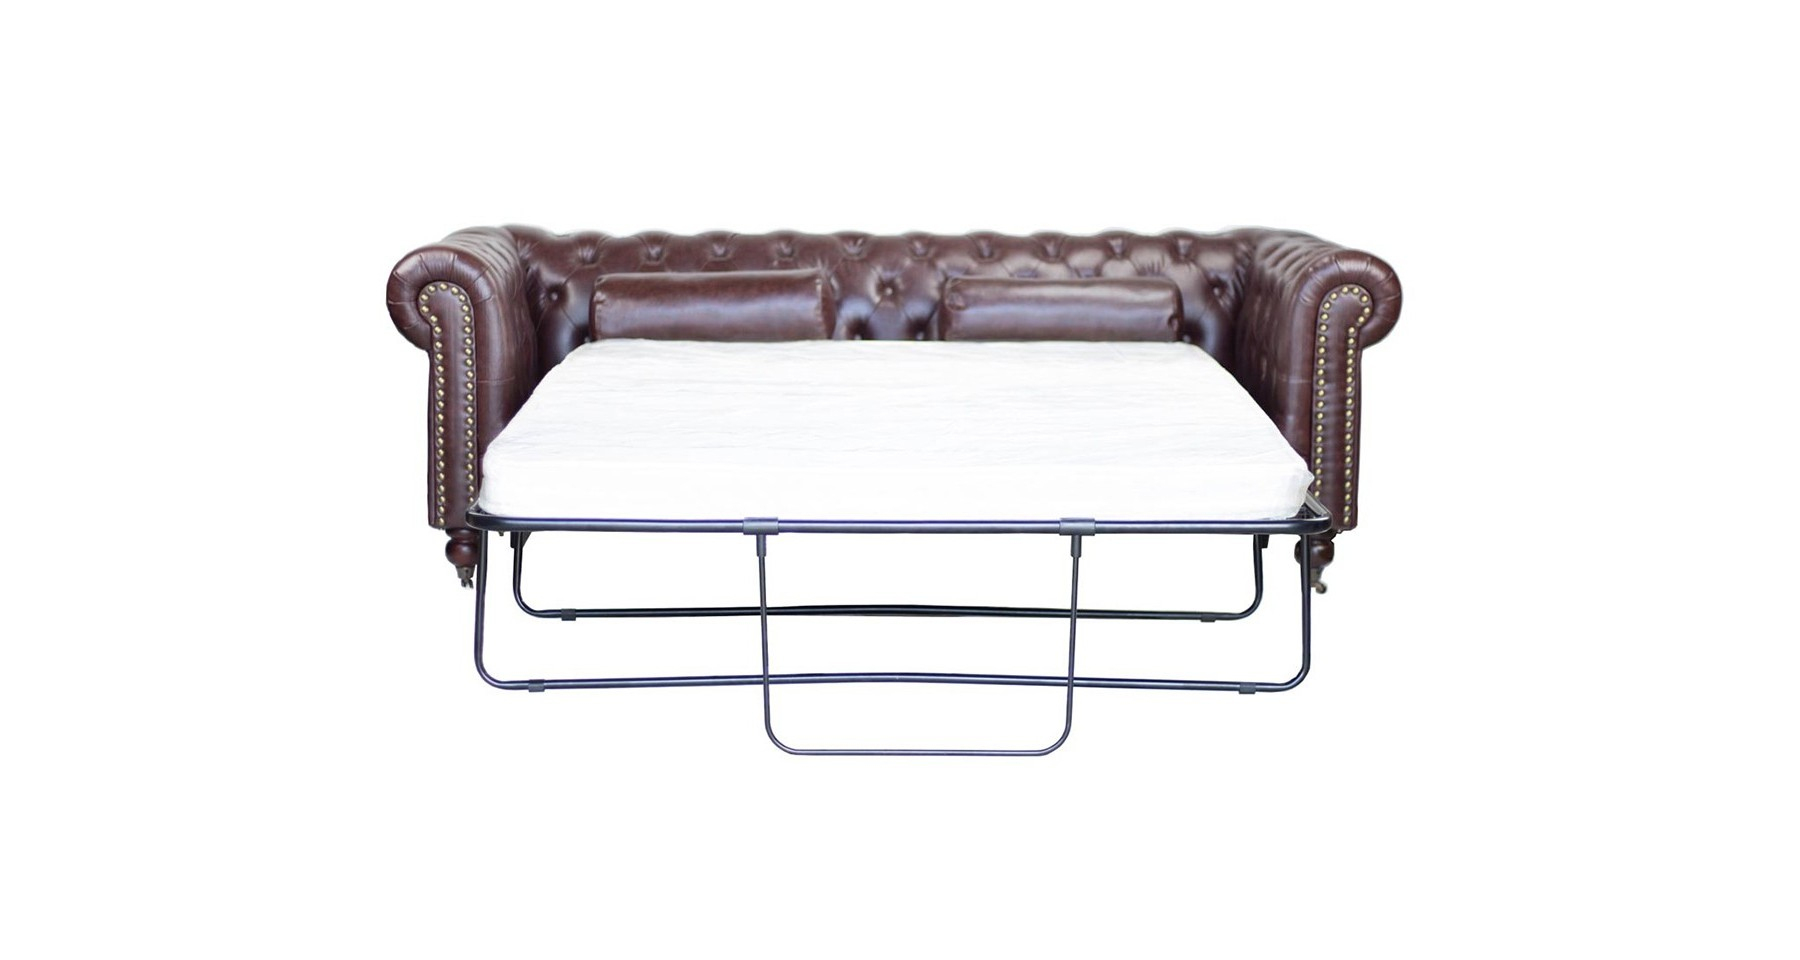 Canapé Chesterfield Convertible Couchage 160 En Cuir Poole destiné Canape Chesterfield Convertible